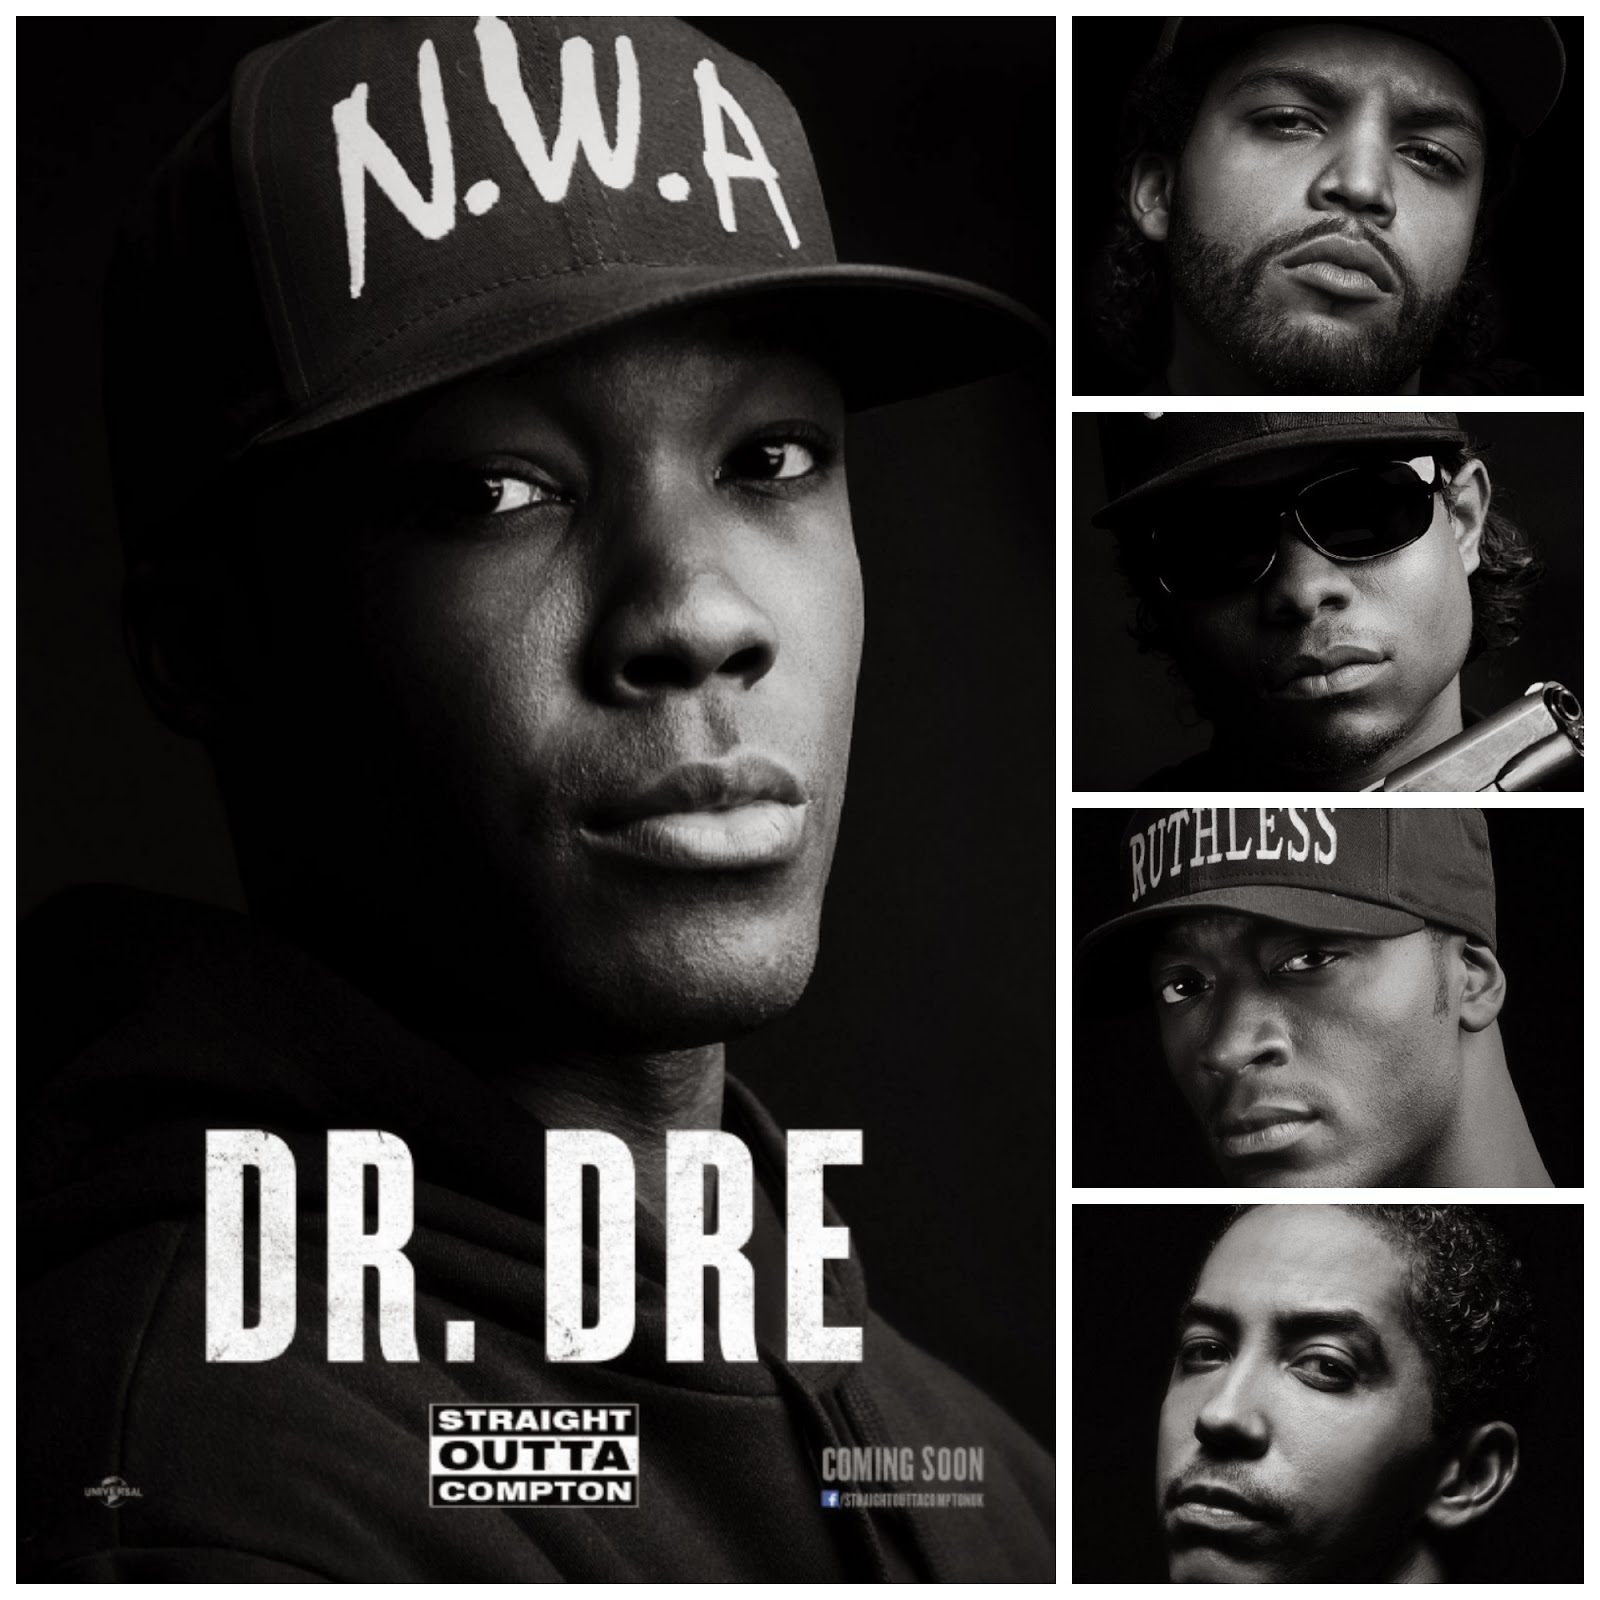 35f3bd512bc N.W.A. origin story Straight Outta Compton global trailer is here.